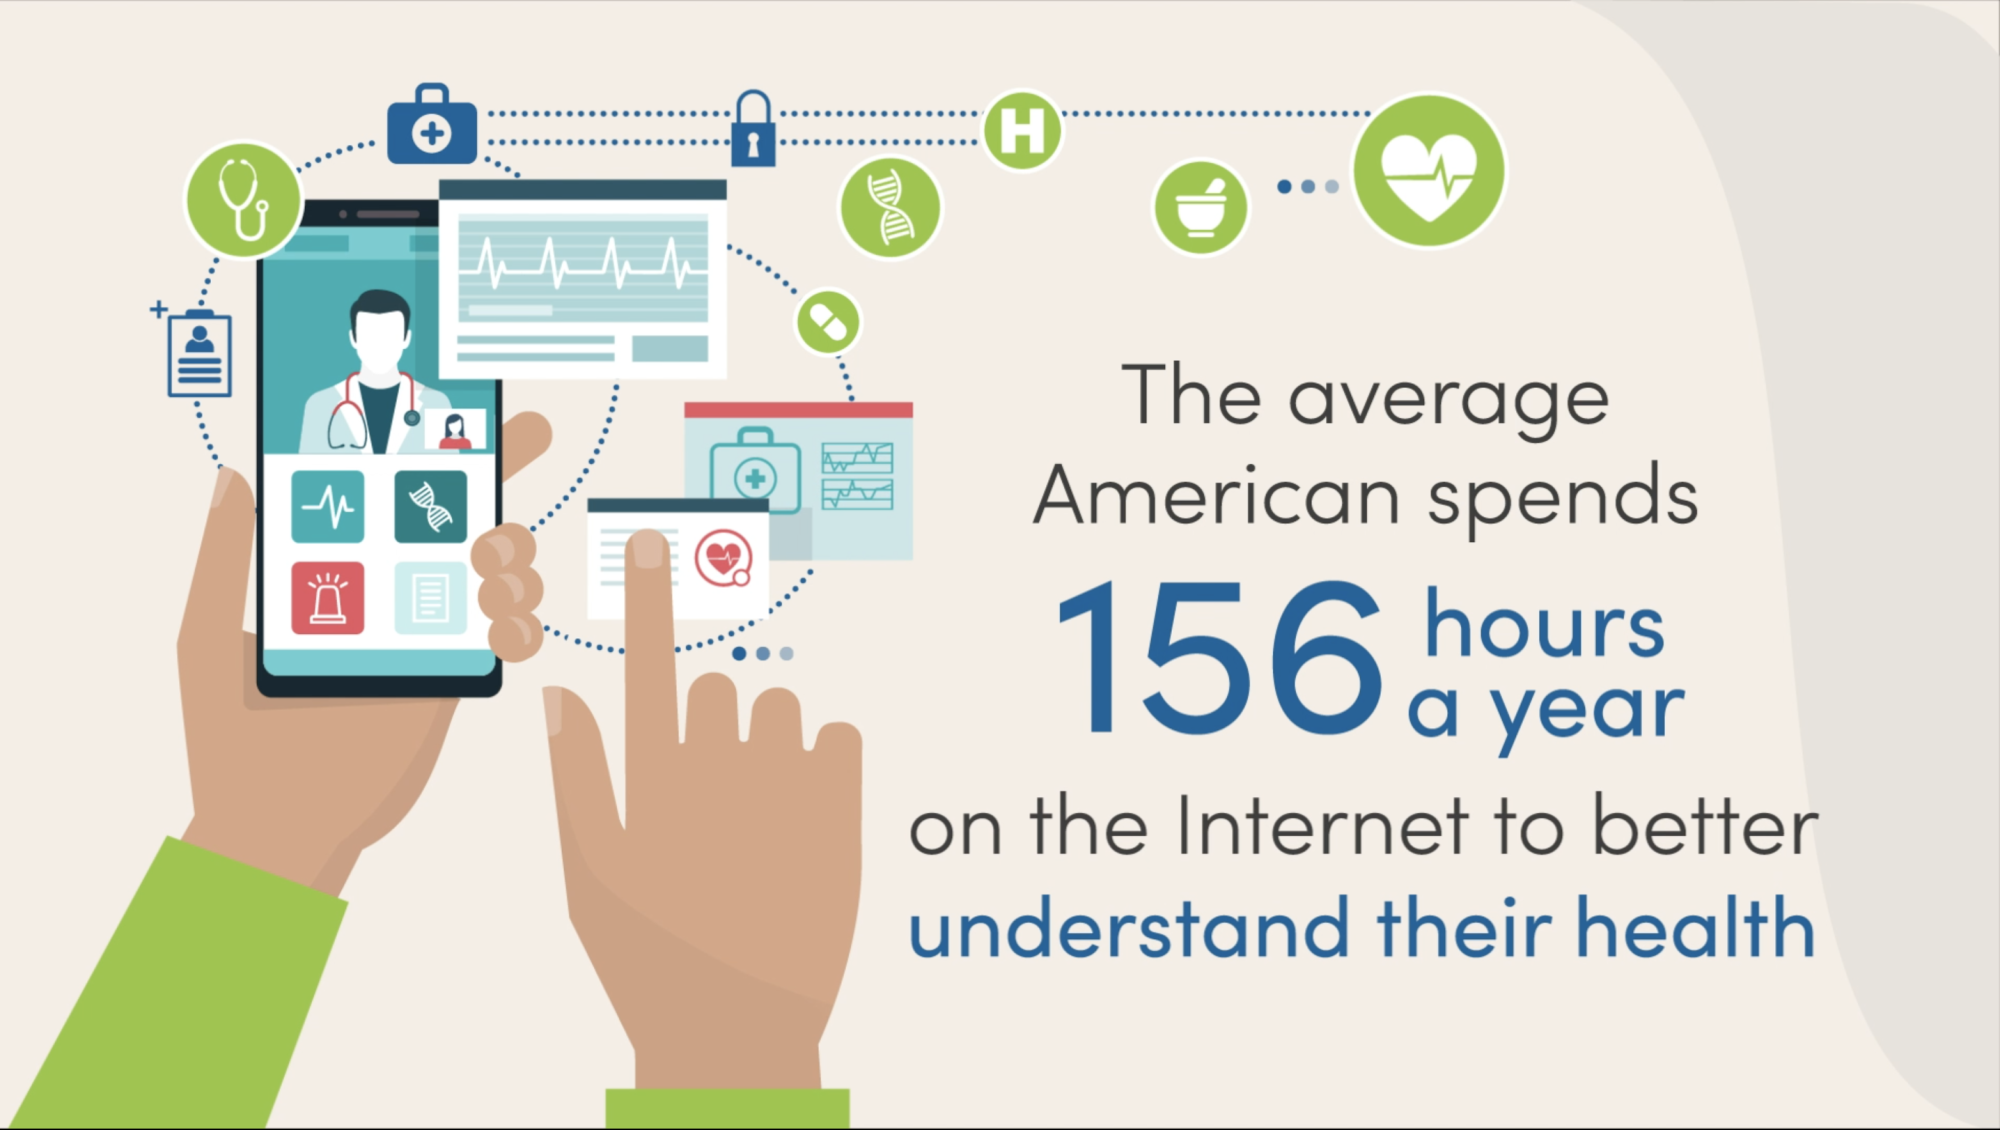 Do you spend more time searching for medical information than the average American?